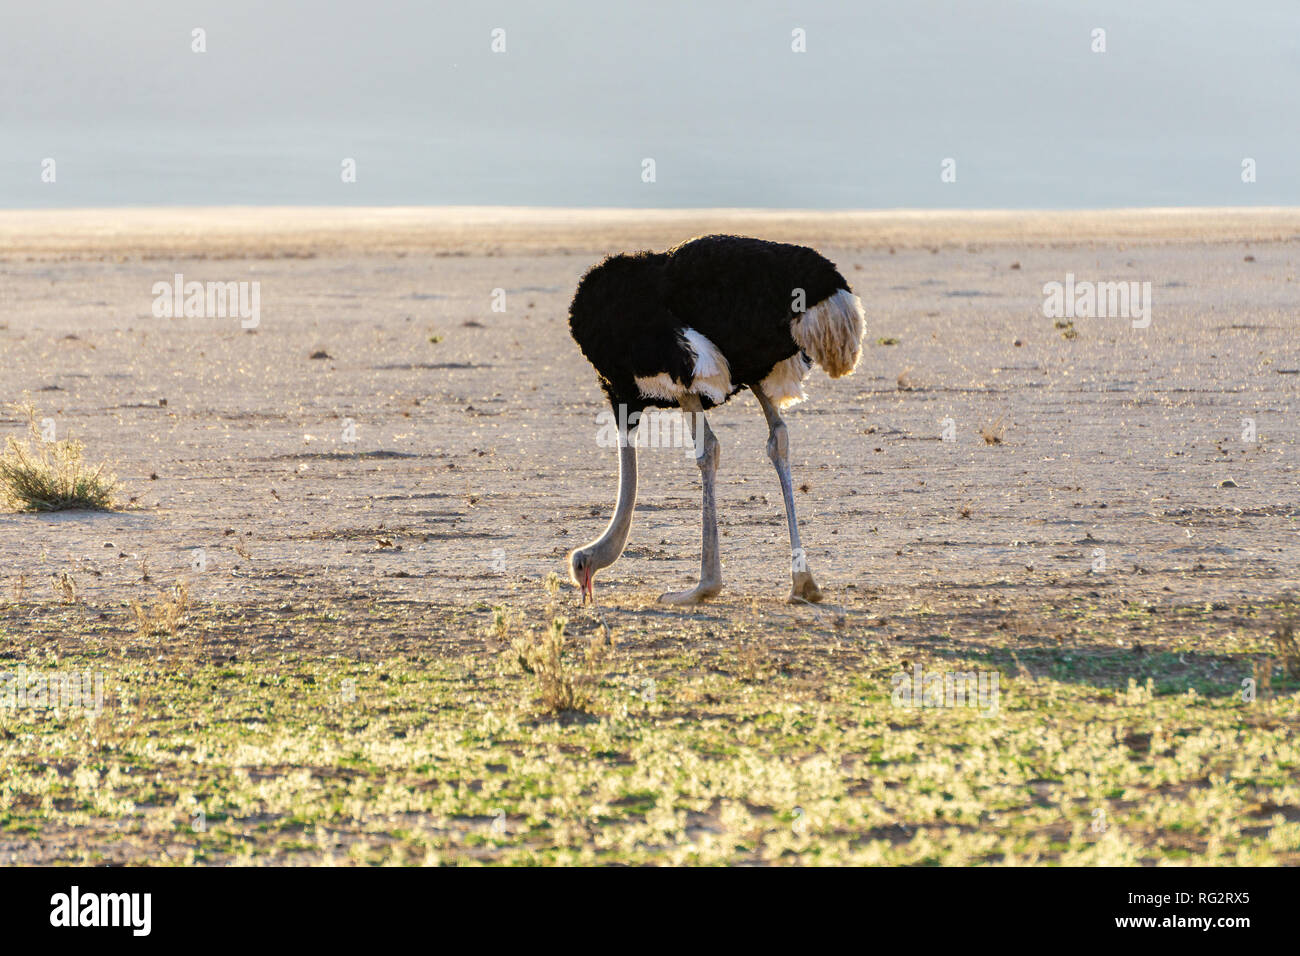 scared ostrich burying its head in sand concept adventure - Stock Image